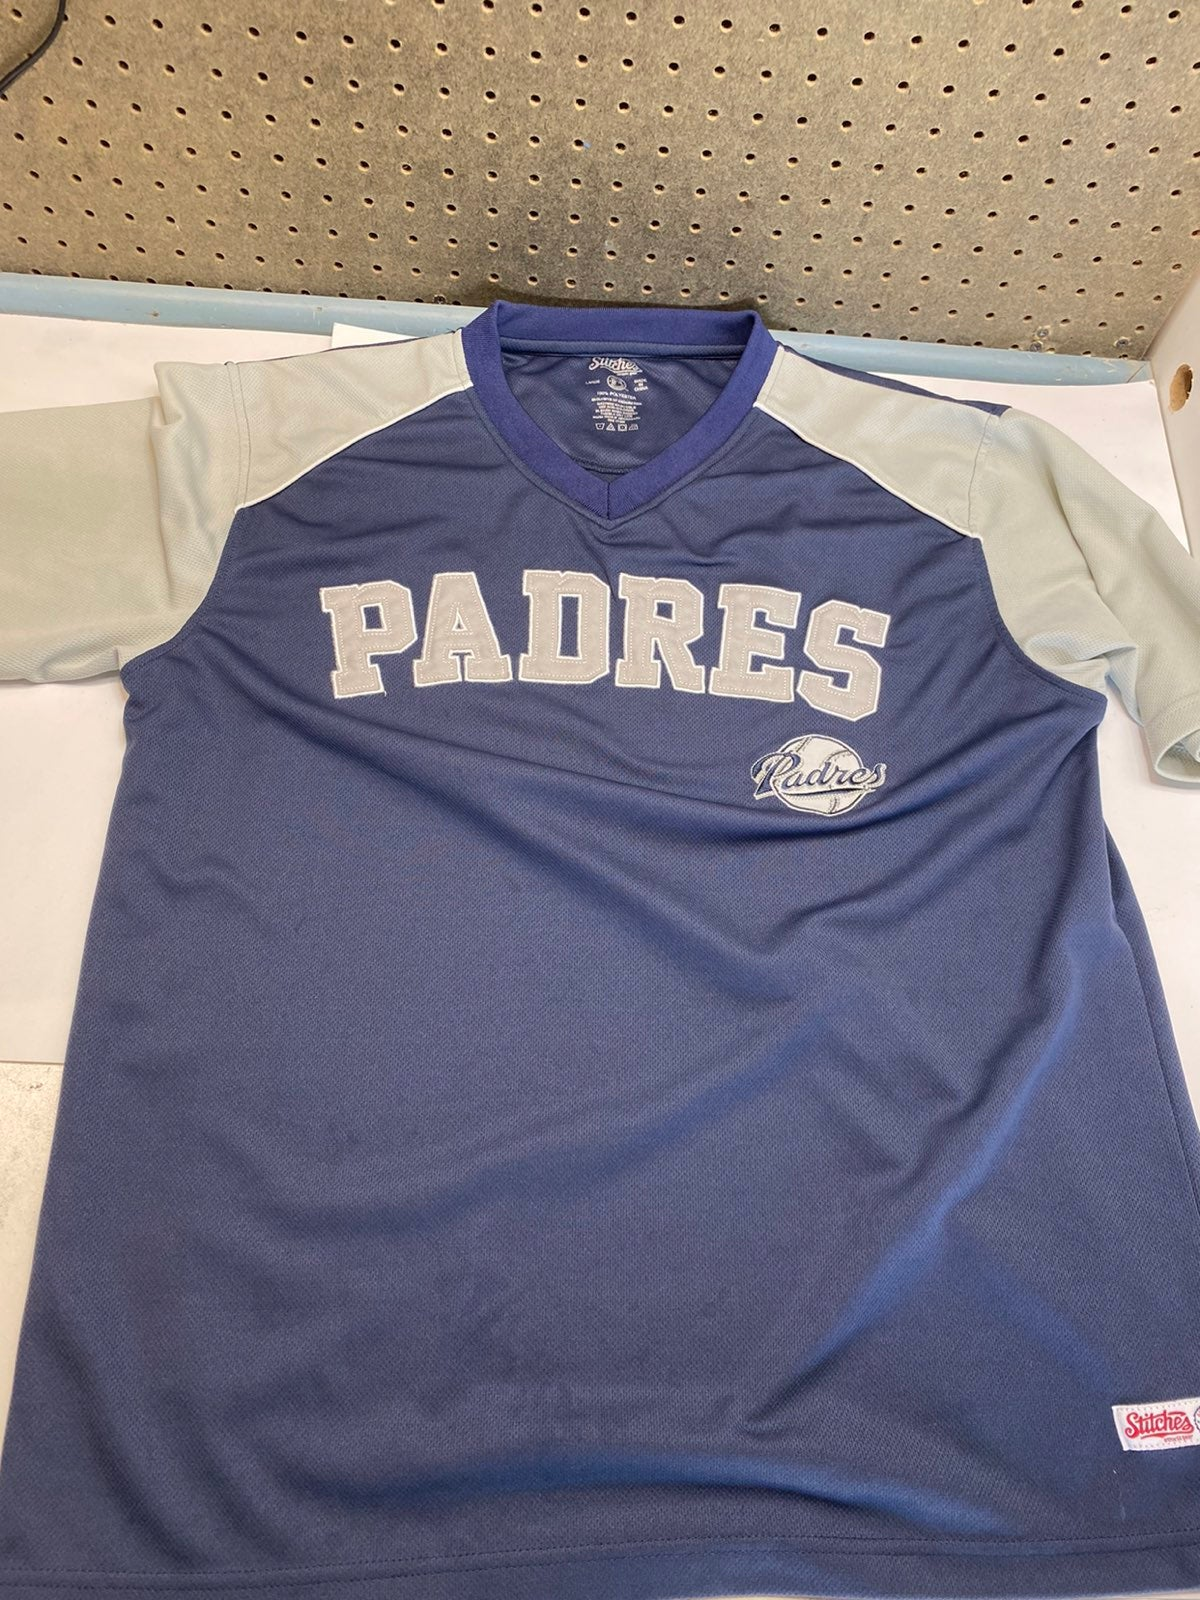 San Diego Padres Stiches Jersey